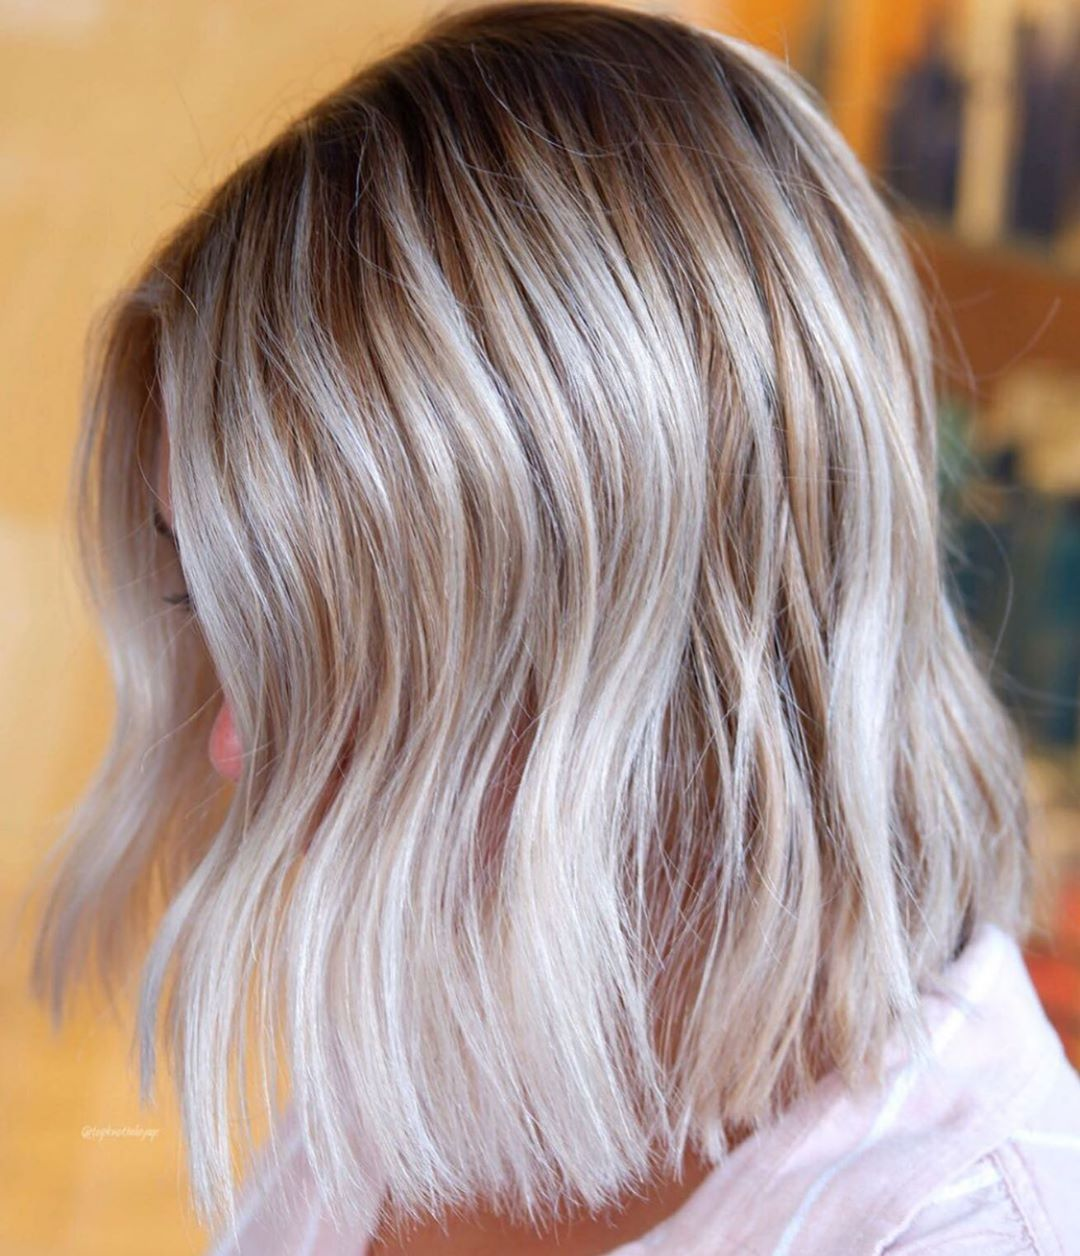 10 Ombre Hairstyles For Medium Length Hair Women Medium Haircut 2020 2021 In 2020 Medium Curly Hair Styles Medium Length Hair Styles Hair Styles